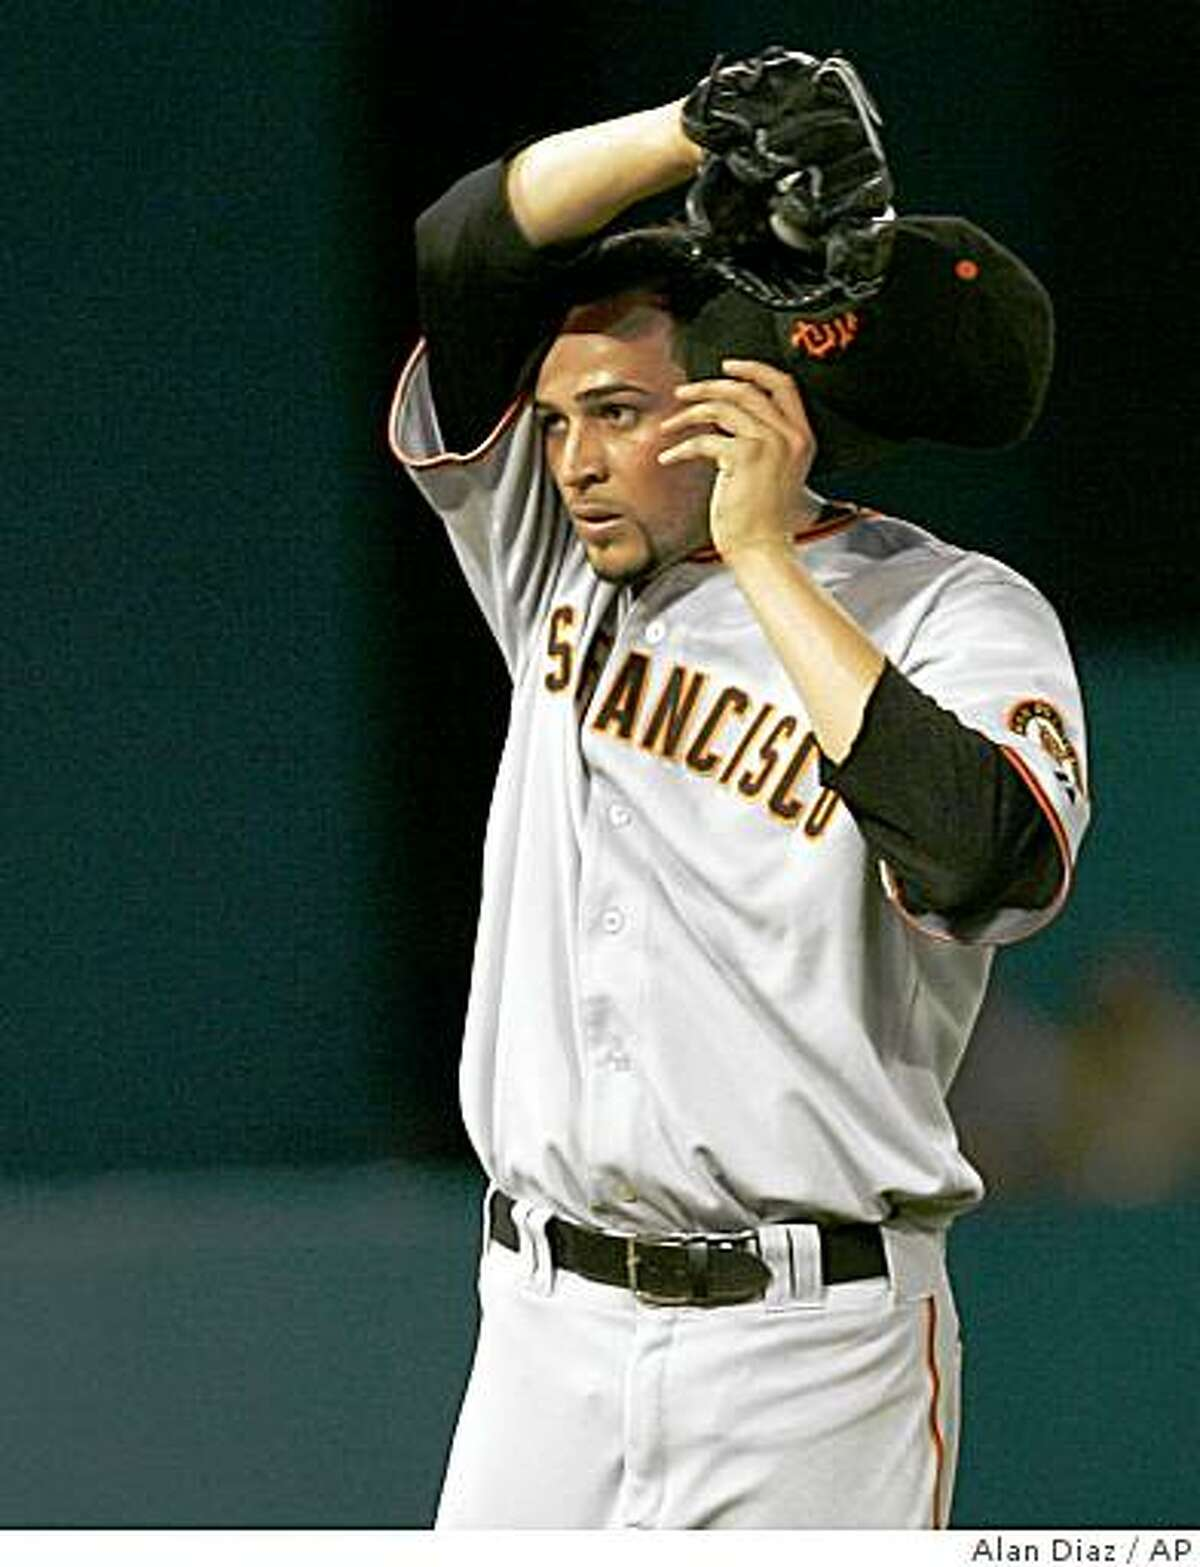 San Francisco Giants' pitcher Jonathan O. Sanchez wipes his face after Florida Marlins' Hanley Ramirez doubled in the third inning in Miami on Saturday.